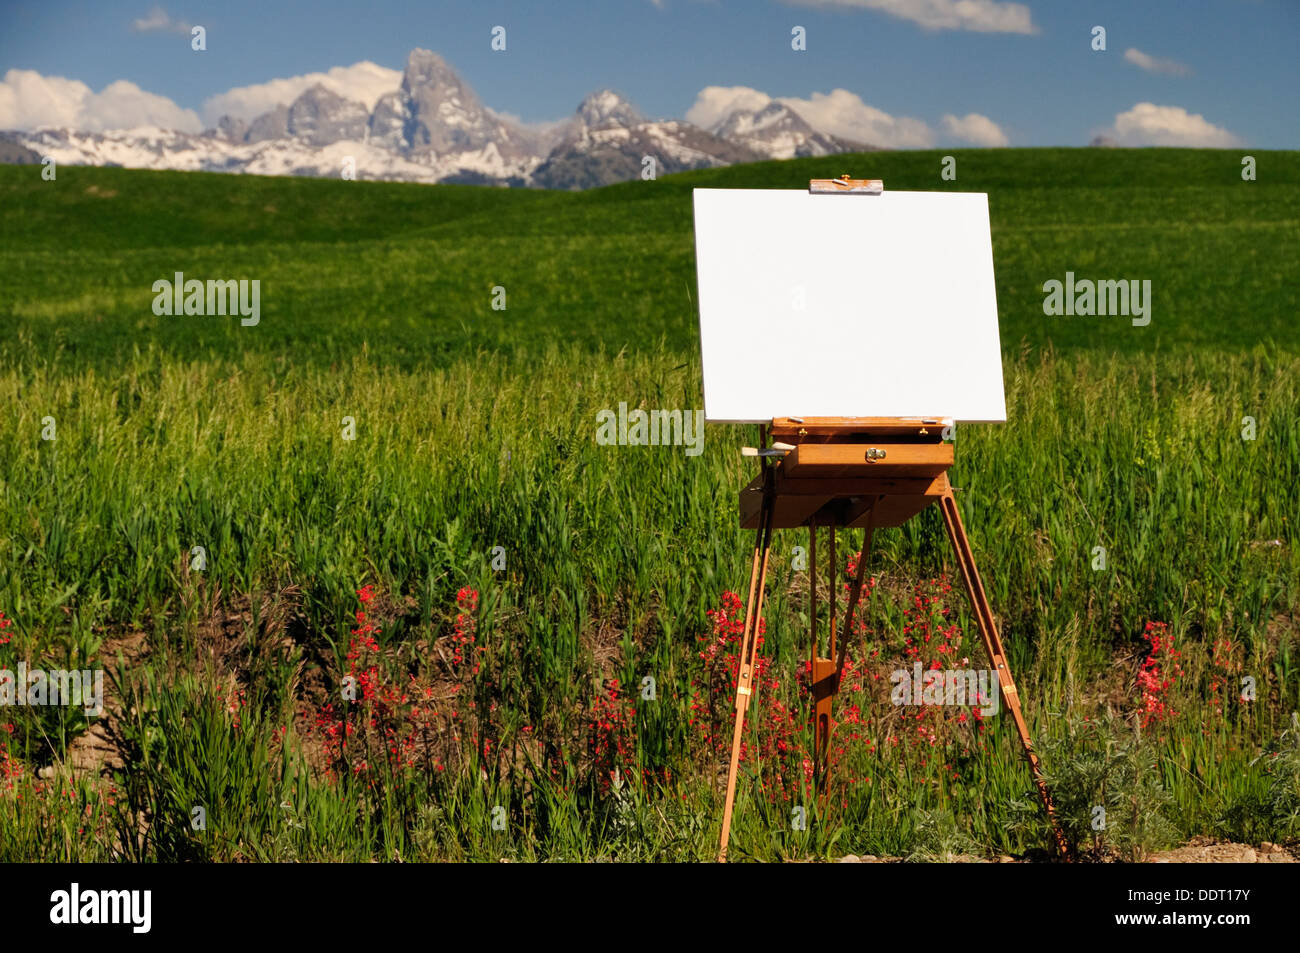 Easel in wildflowers overlooking green field and mountains - Stock Image